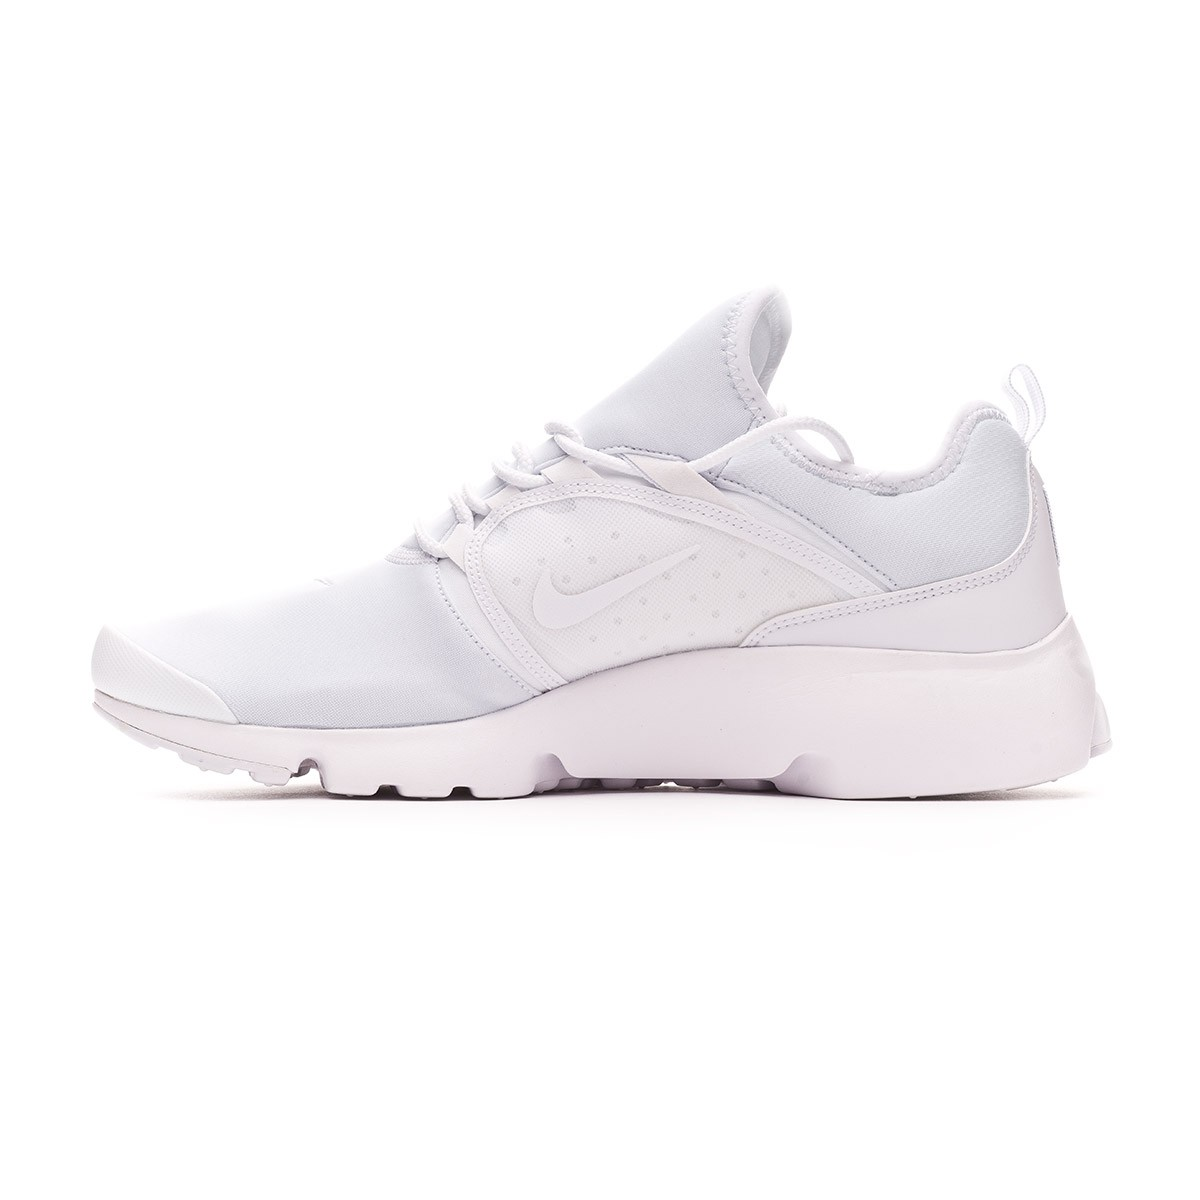 bf0a4e6bd7 Trainers Nike Presto Fly World 2019 White - Tienda de fútbol Fútbol Emotion